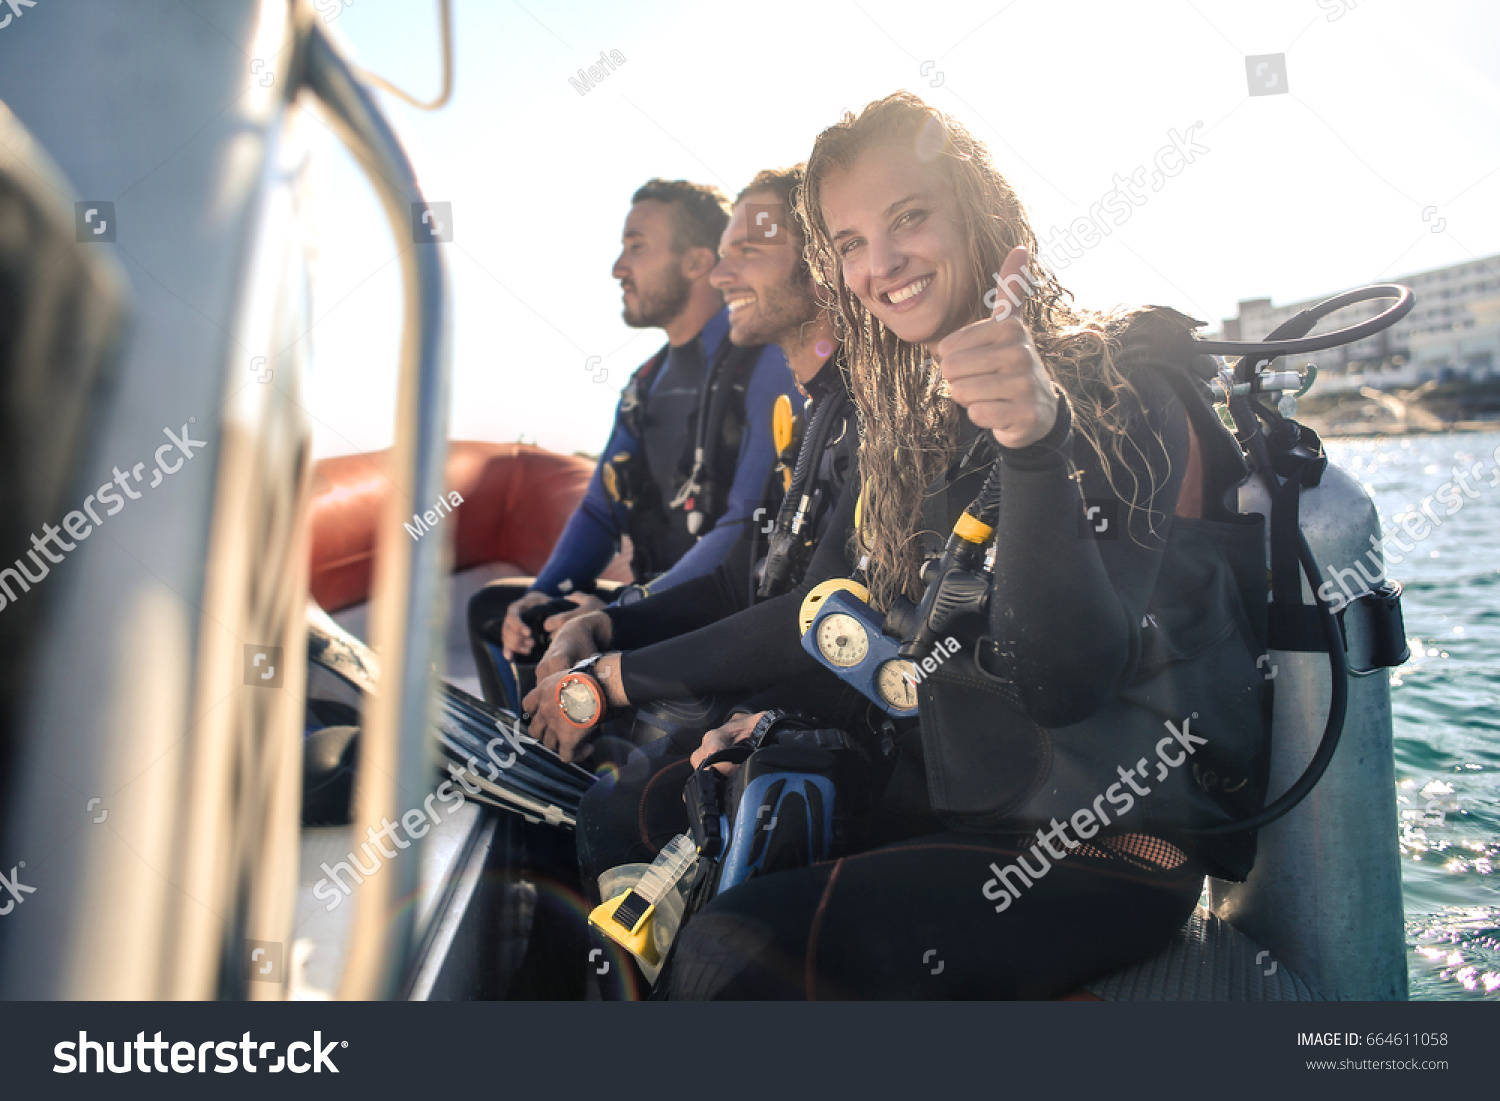 Group of scuba divers on a boat #664611058